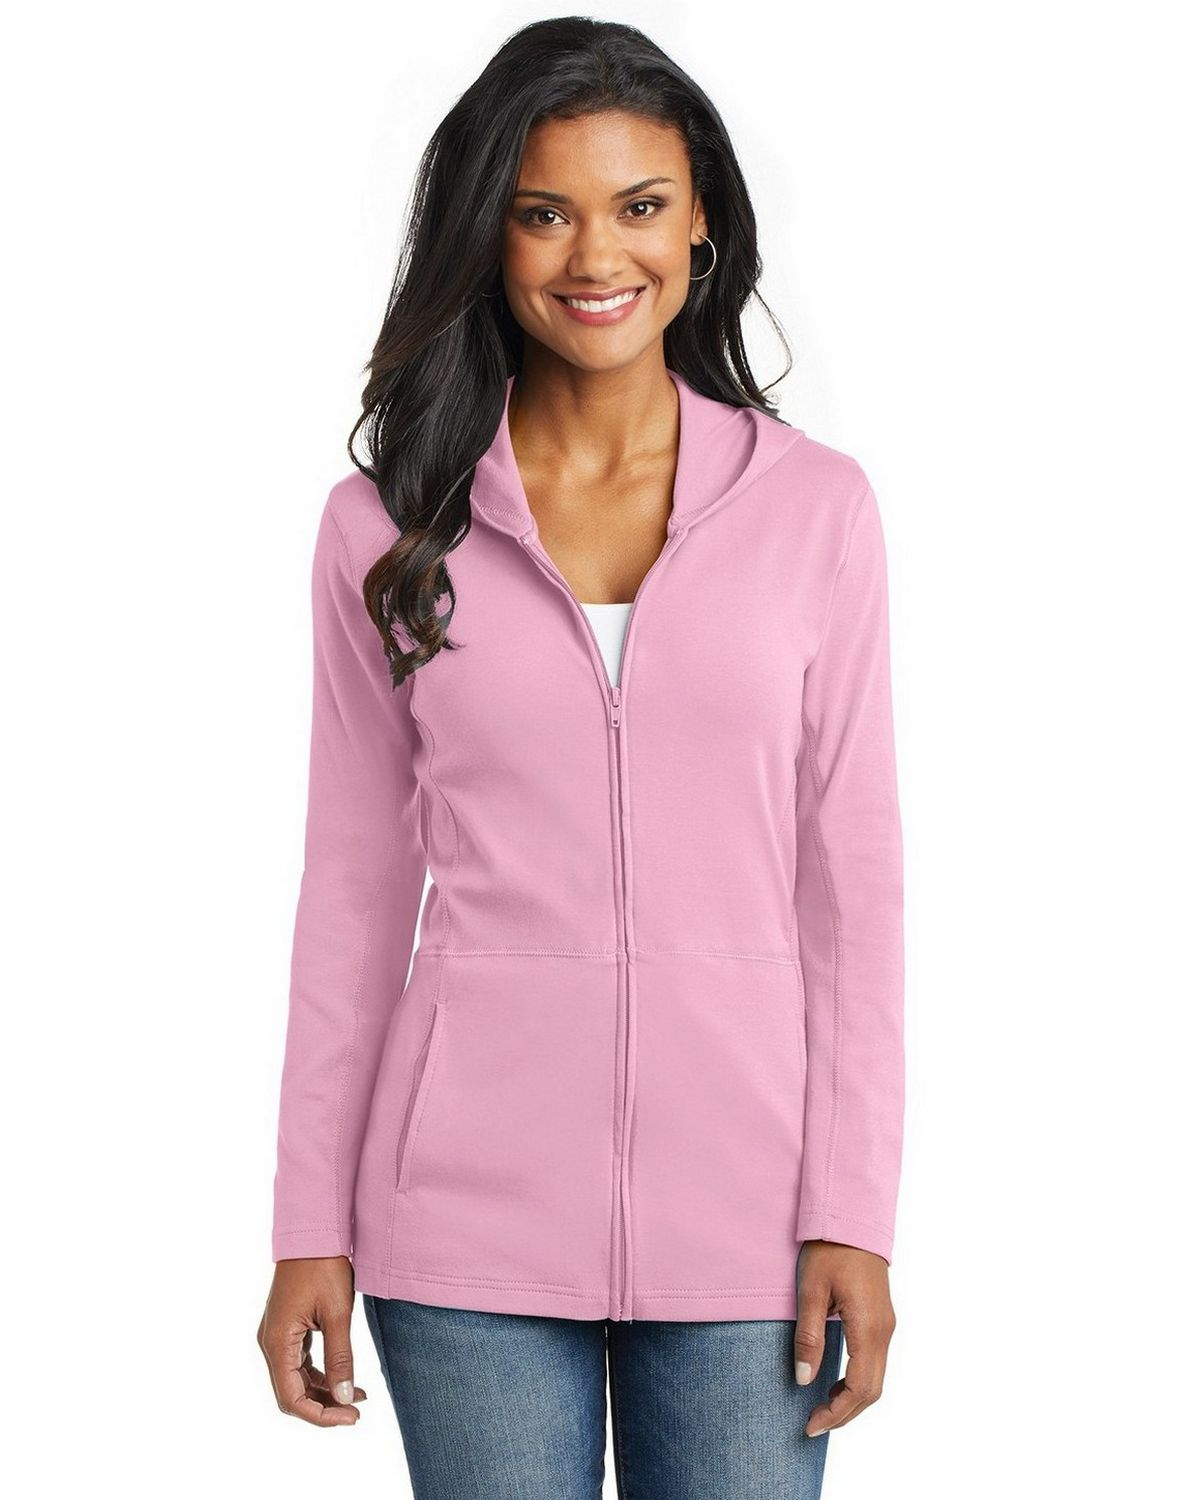 Port Authority L519 Ladies Modern Stretch Cotton Jacket - Petal Pink - L L519